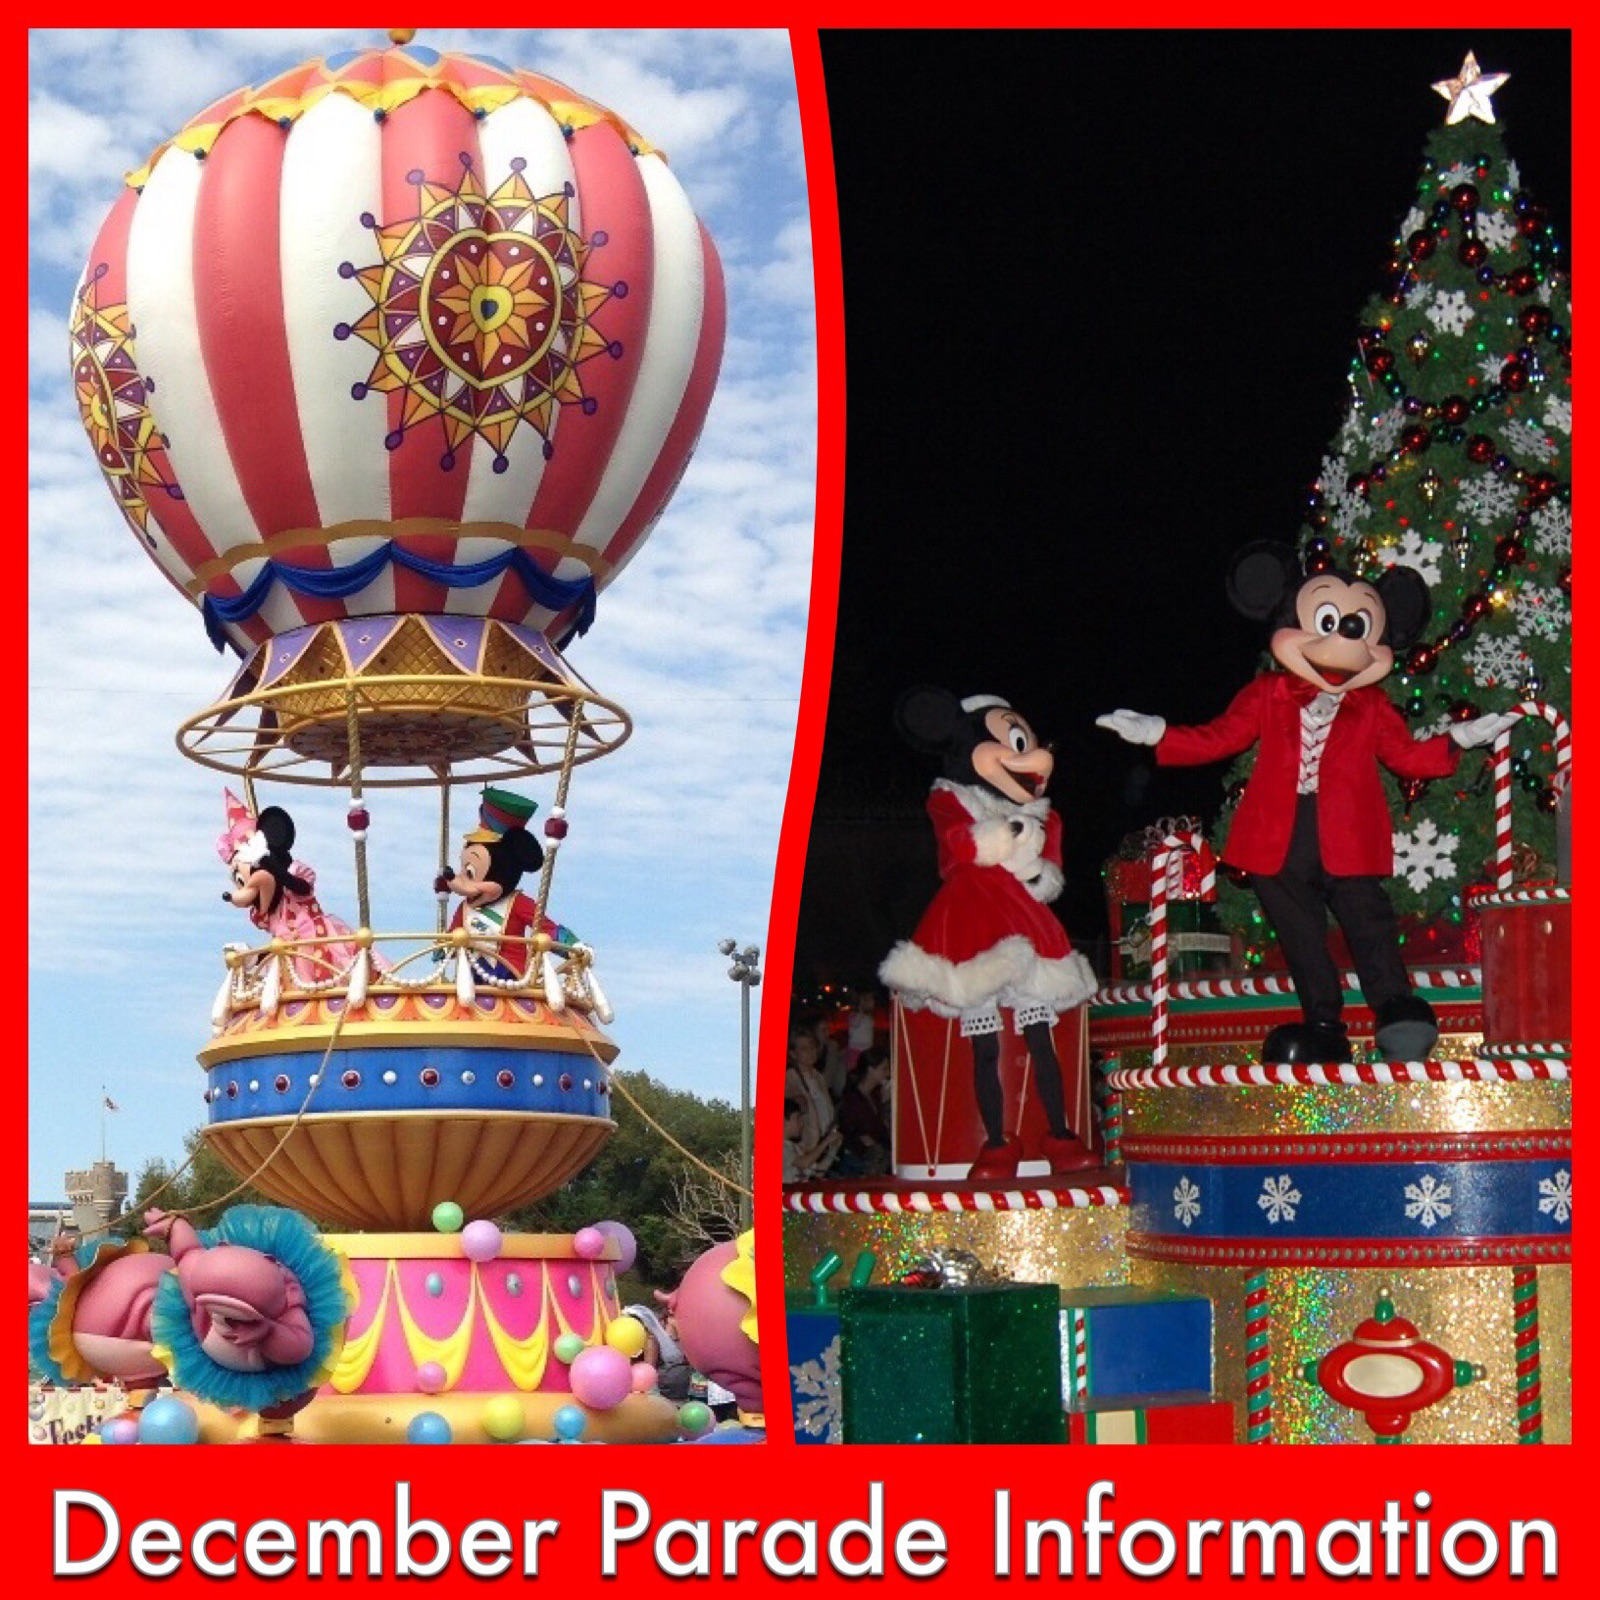 Information about changes to the December parade schedule in the Magic Kingdom at Disney World - includes information about Mickey's Once Upon A Christmastime Parade and Festival of Fantasy Parade as well as Fantasy in the Sky fireworks on New Year's Eve.